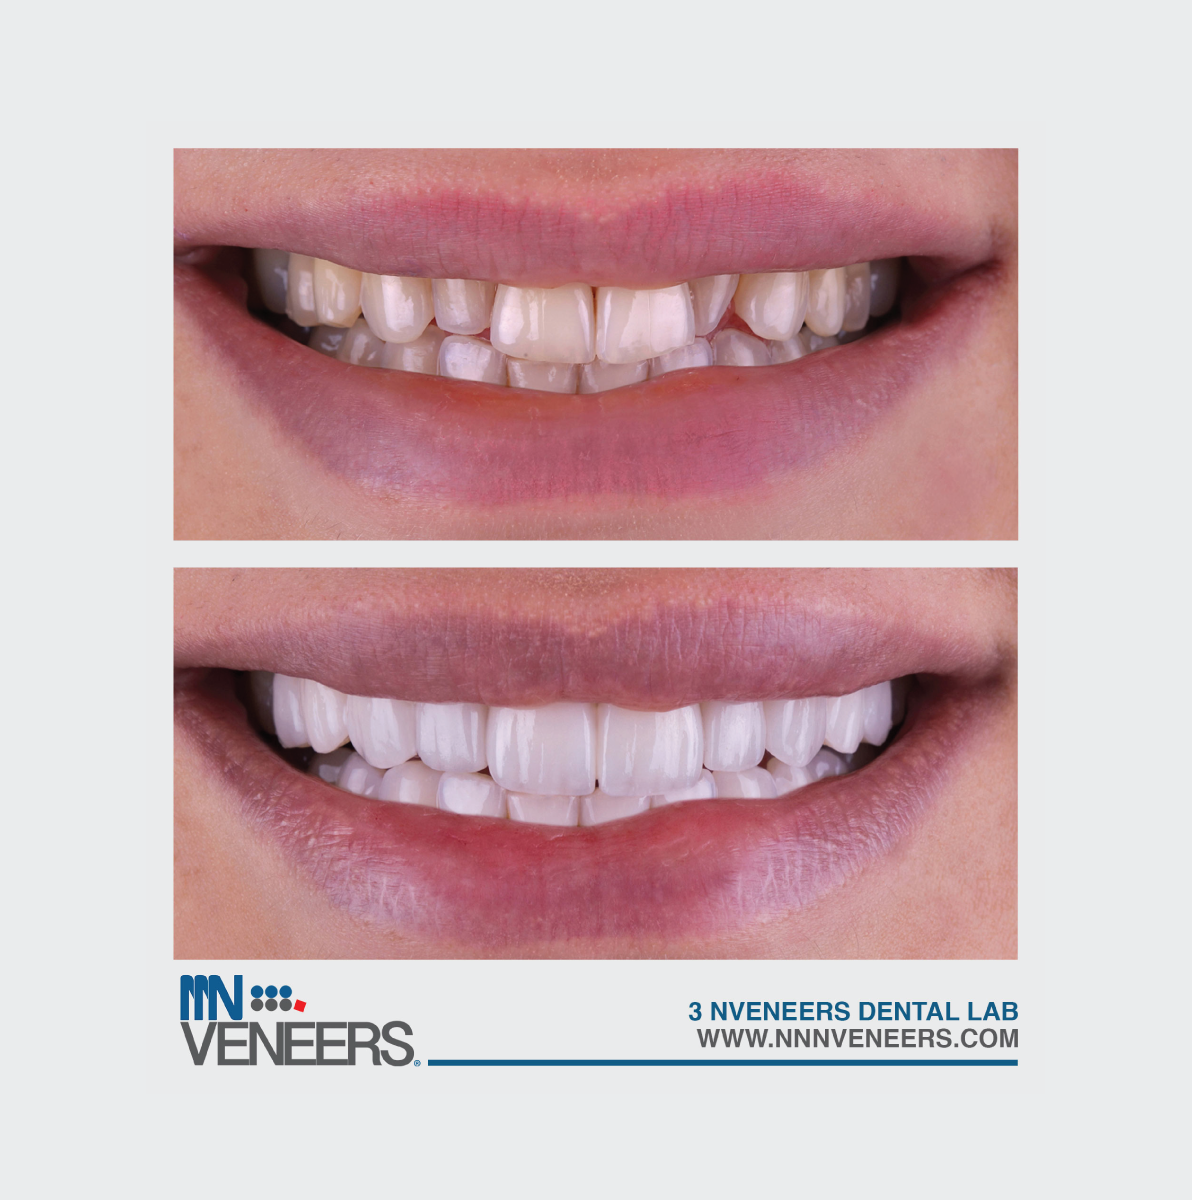 Benefits of NNN VENEERS : 1